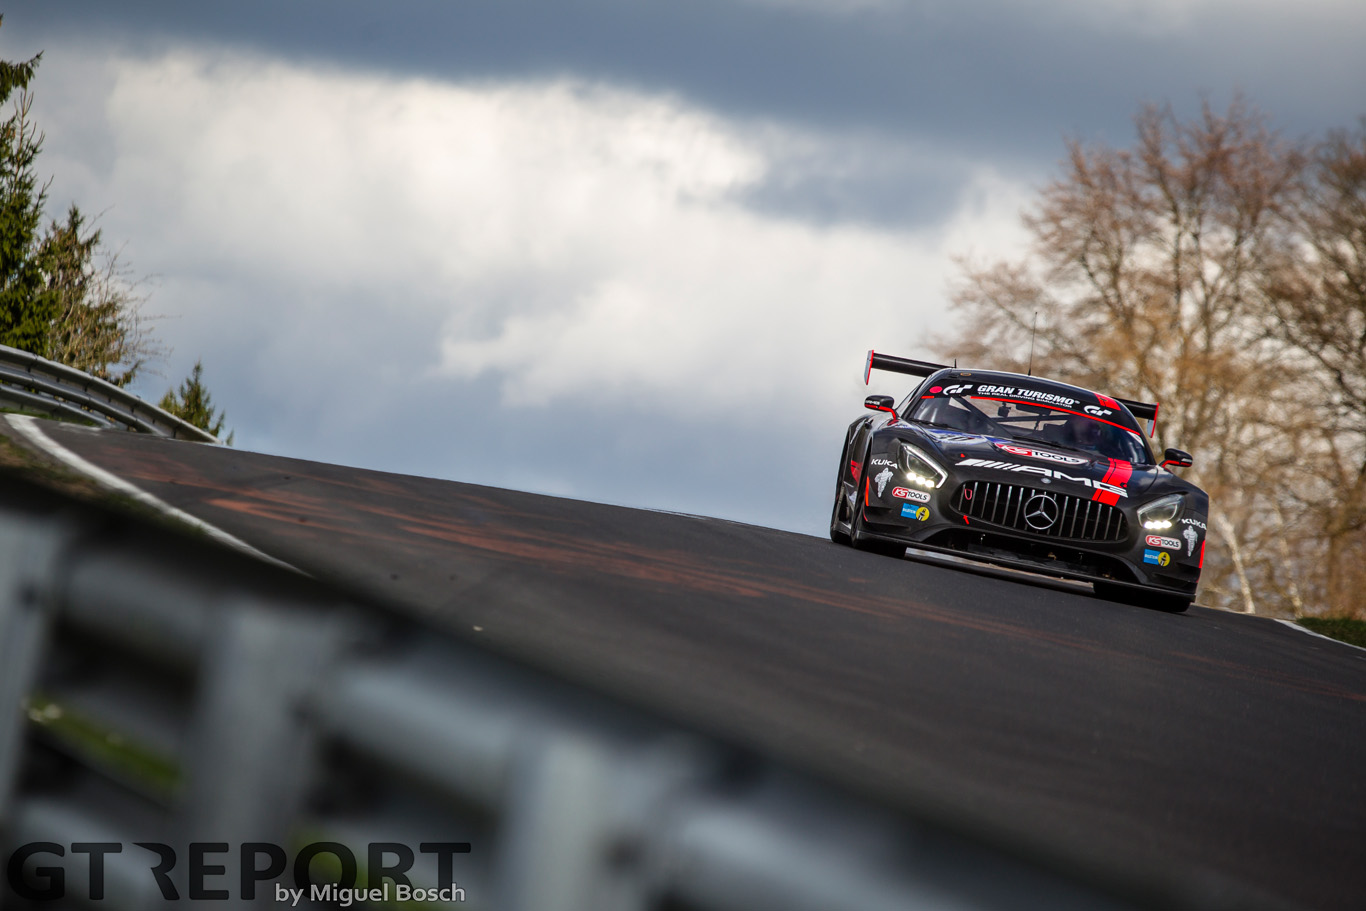 Nürburgring 24 Hours Qualifying Race report: The long way back